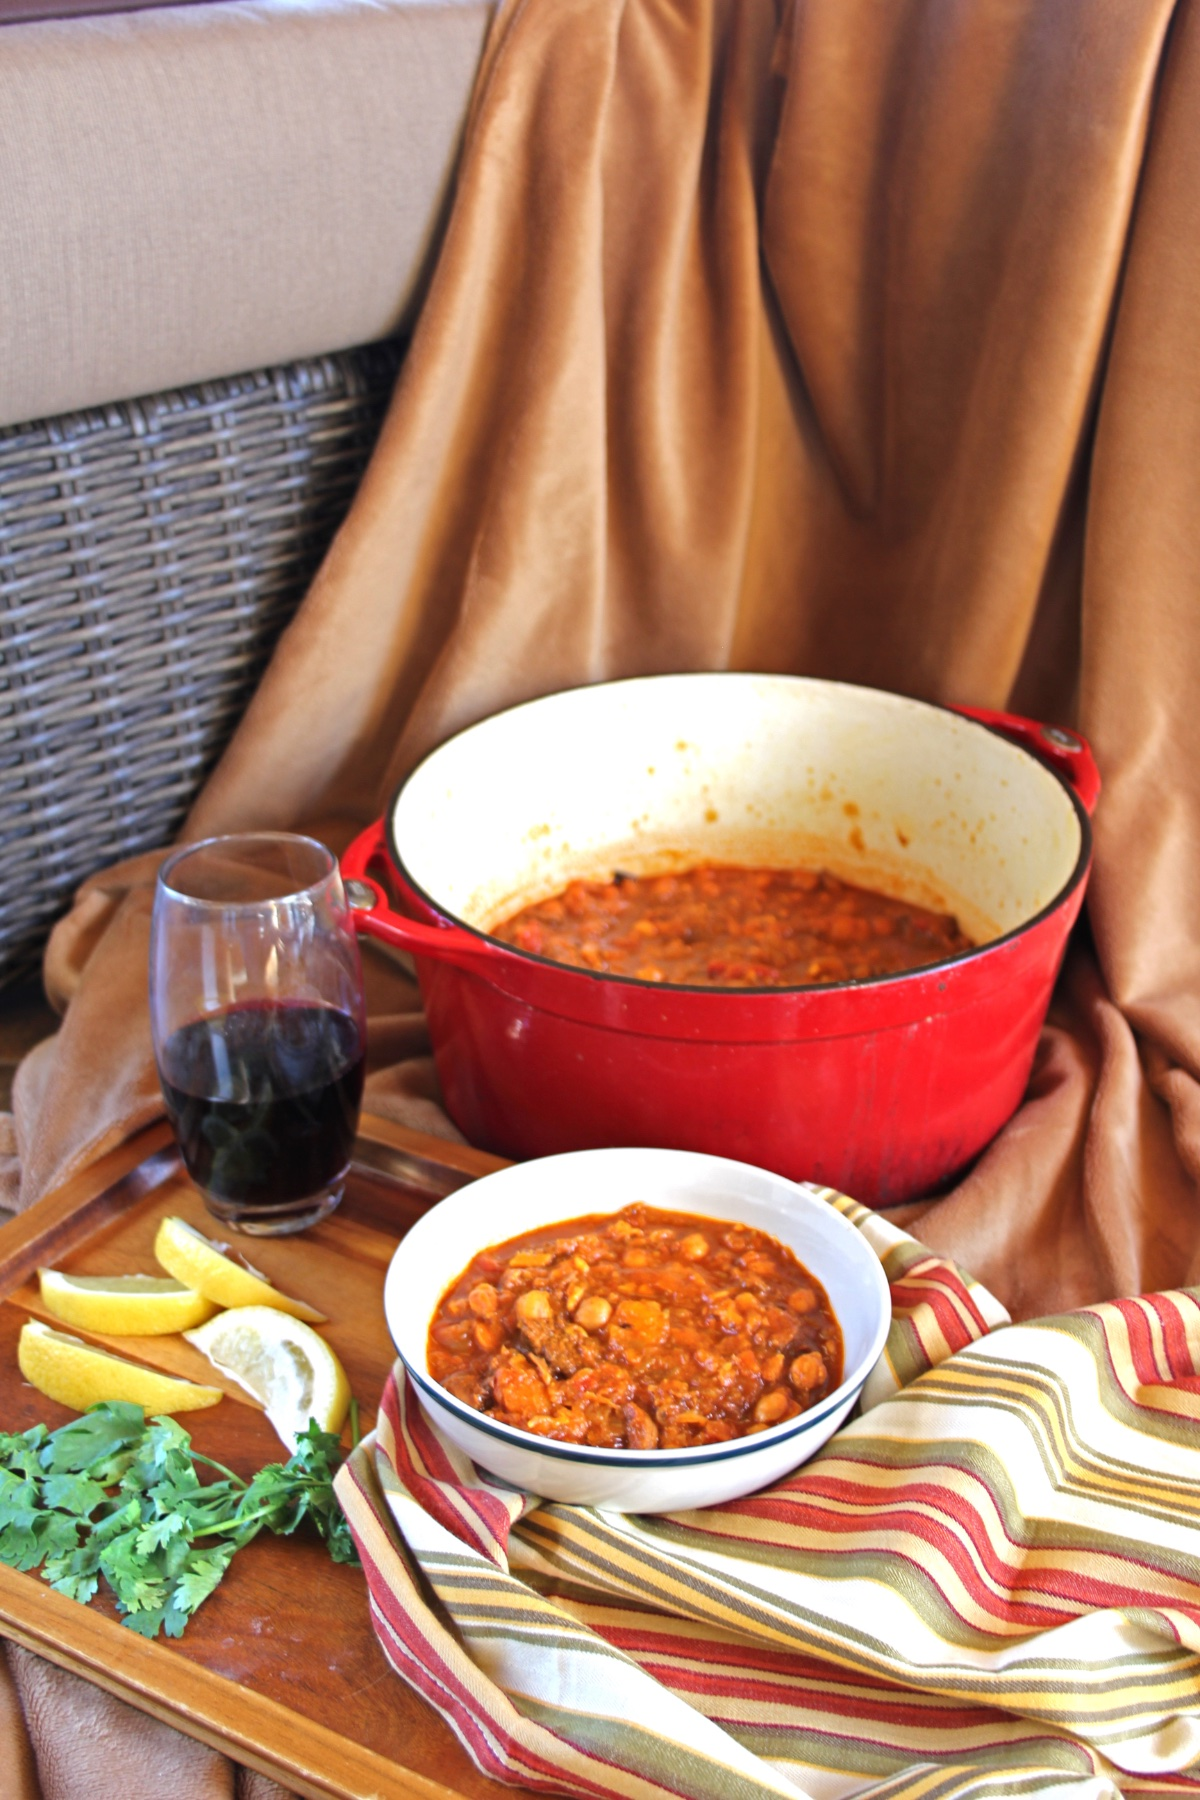 Easy Soups for Fall: Moroccan Lamb Stew. A bowl of stew sits in front of the stew pot, surrounded by lemon wedges and a glass of red wine.